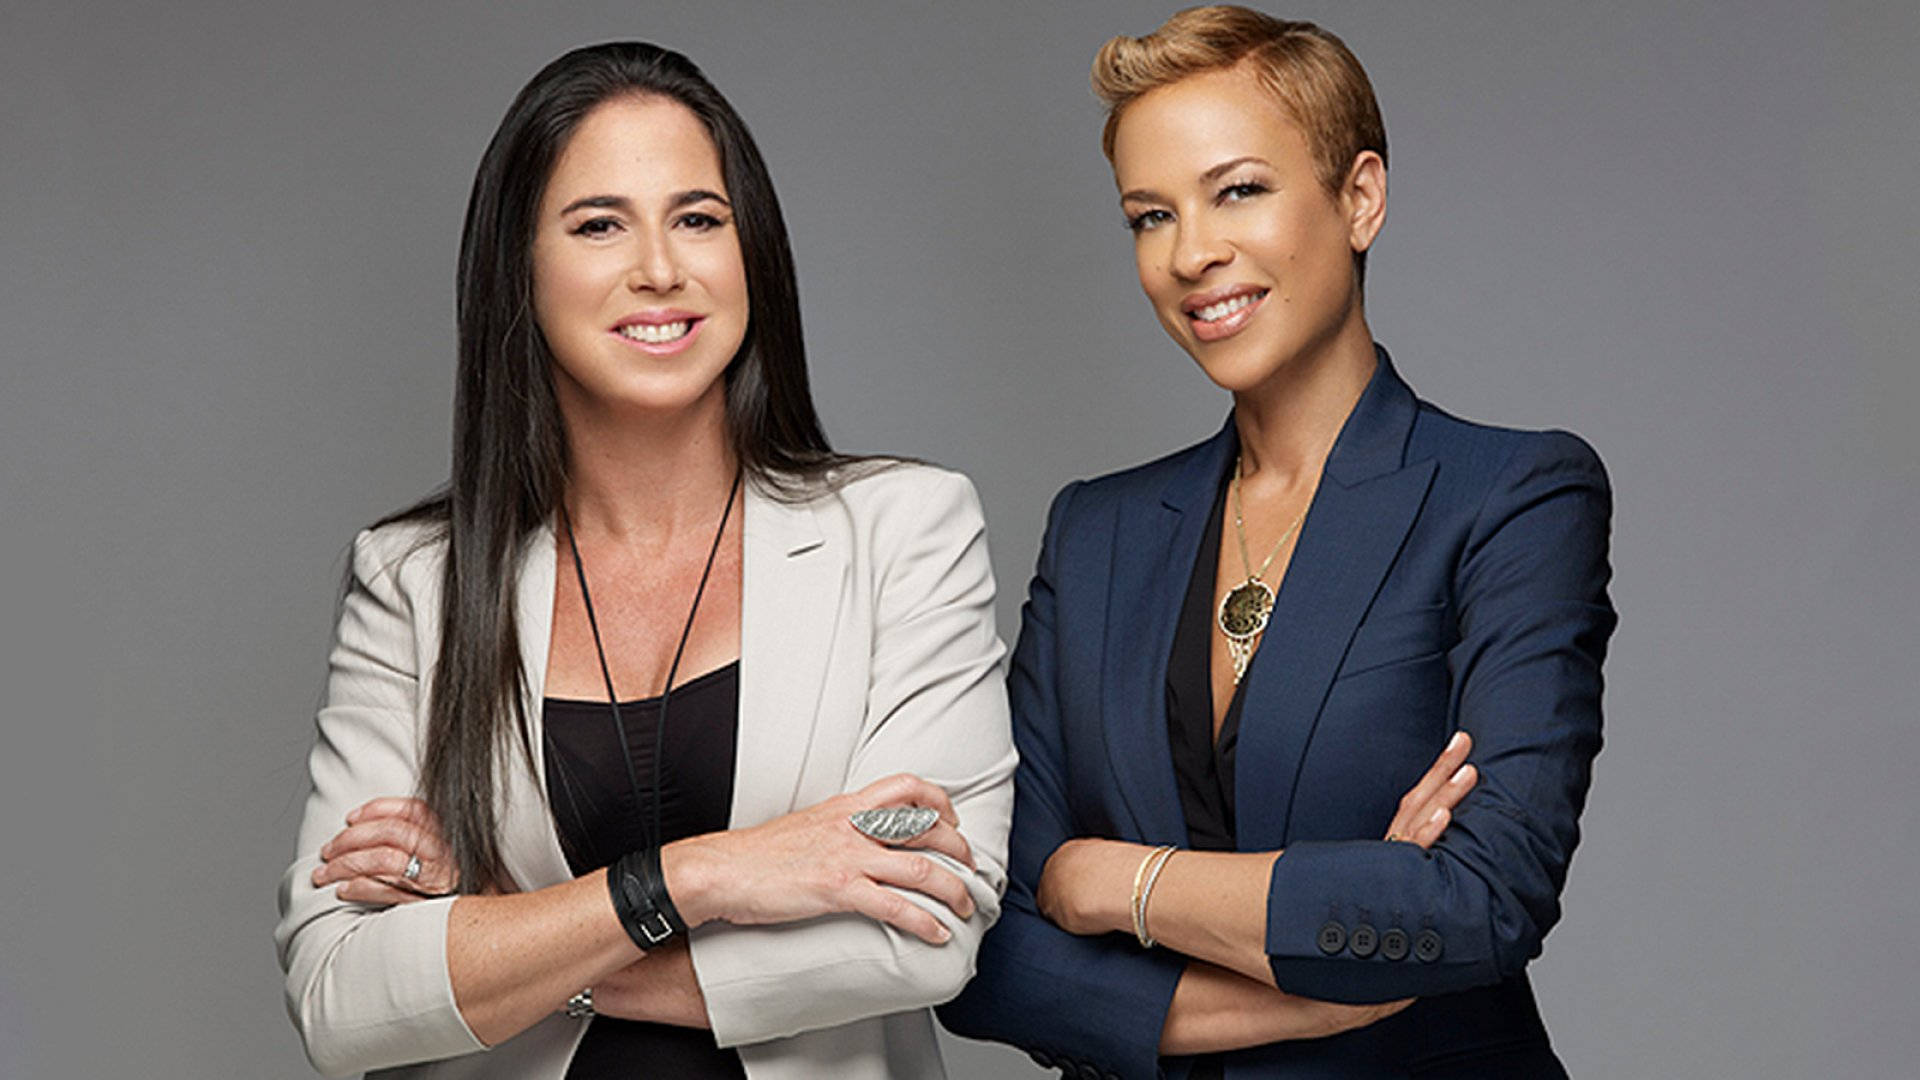 Nikki Silver and Tonya Lewis Lee launched their independent production company in 2012.